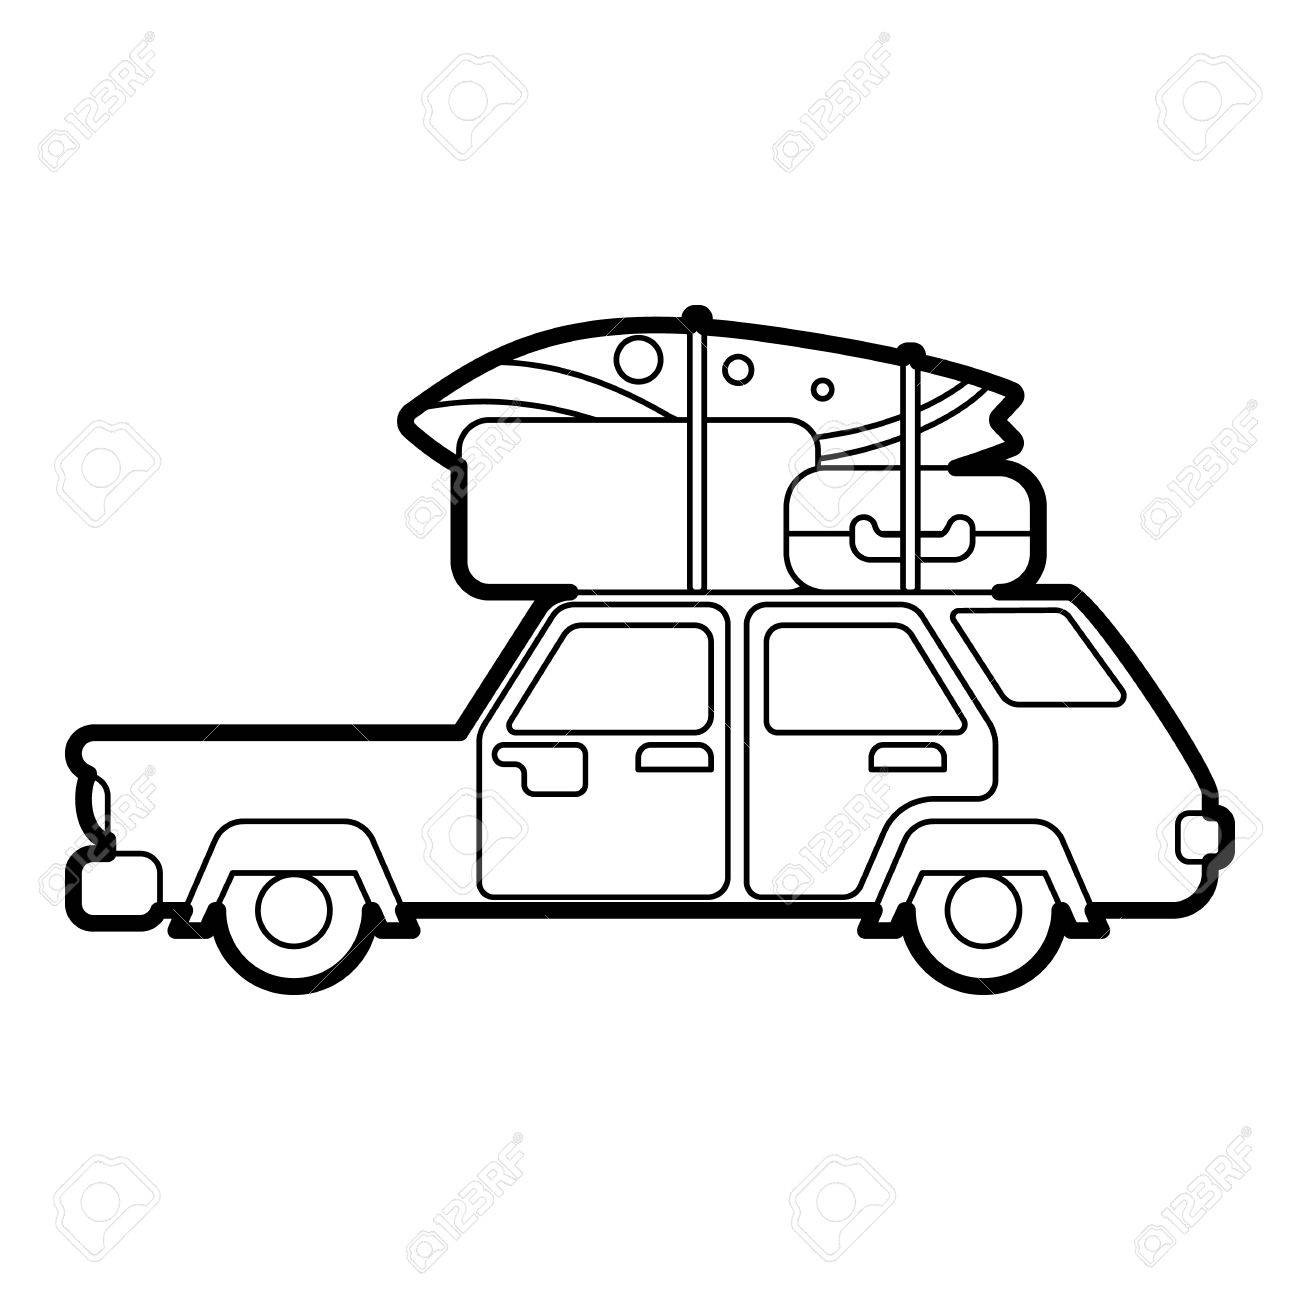 Car roof clipart image download At Car With Luggage Clipart 64092219 Hatchback Roof Rack Top Cargo ... image download